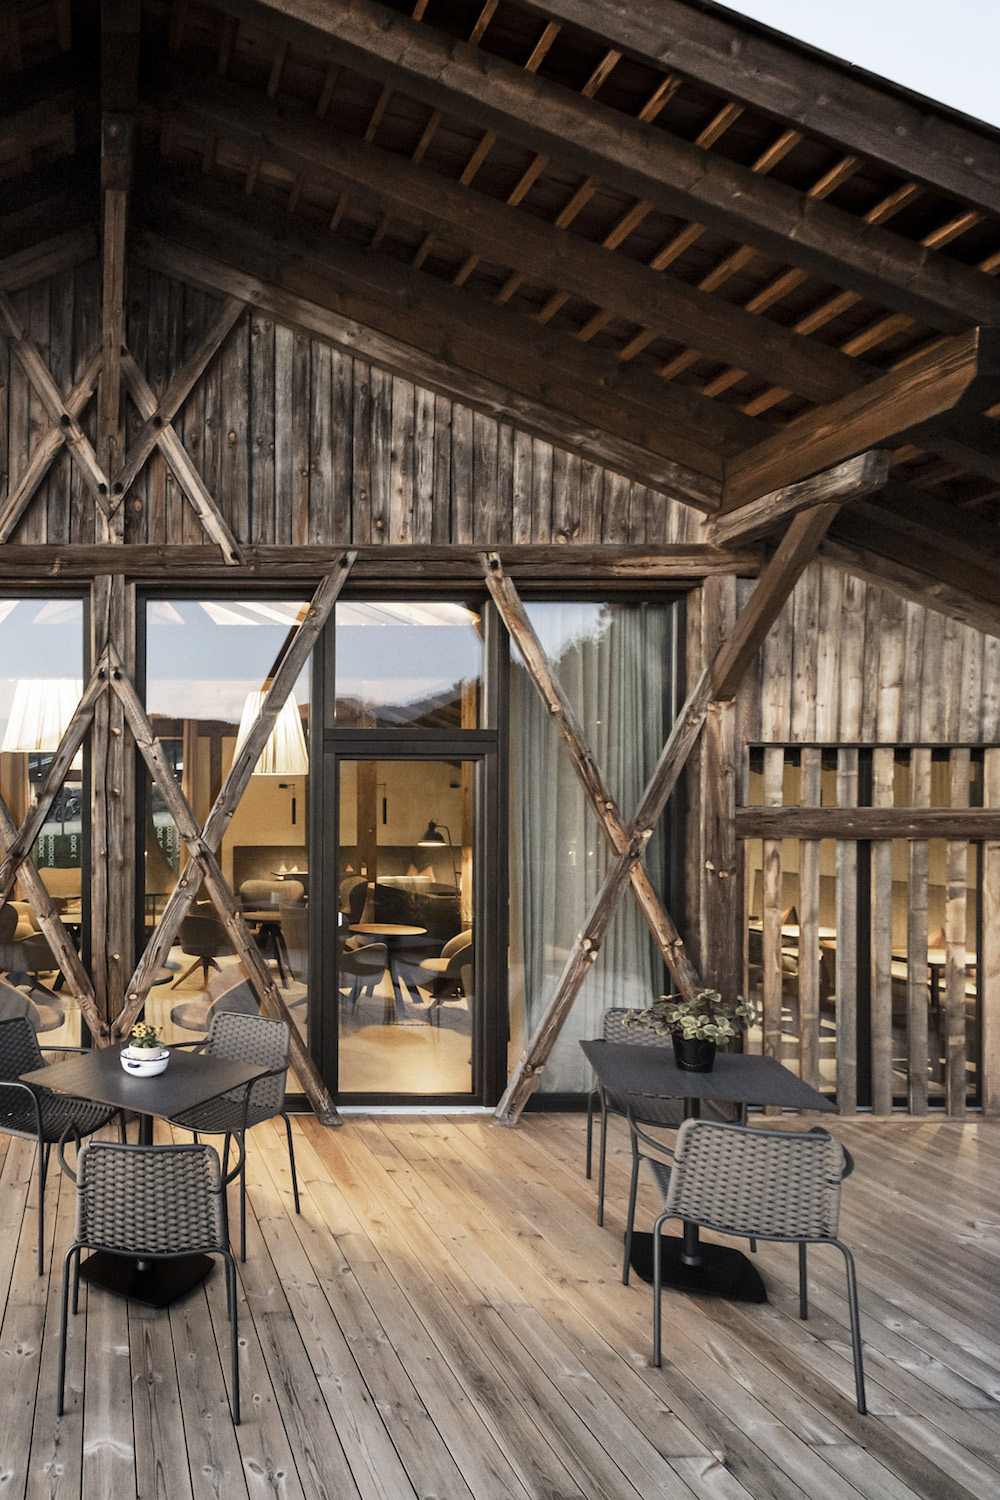 Image of terrace in converted barn